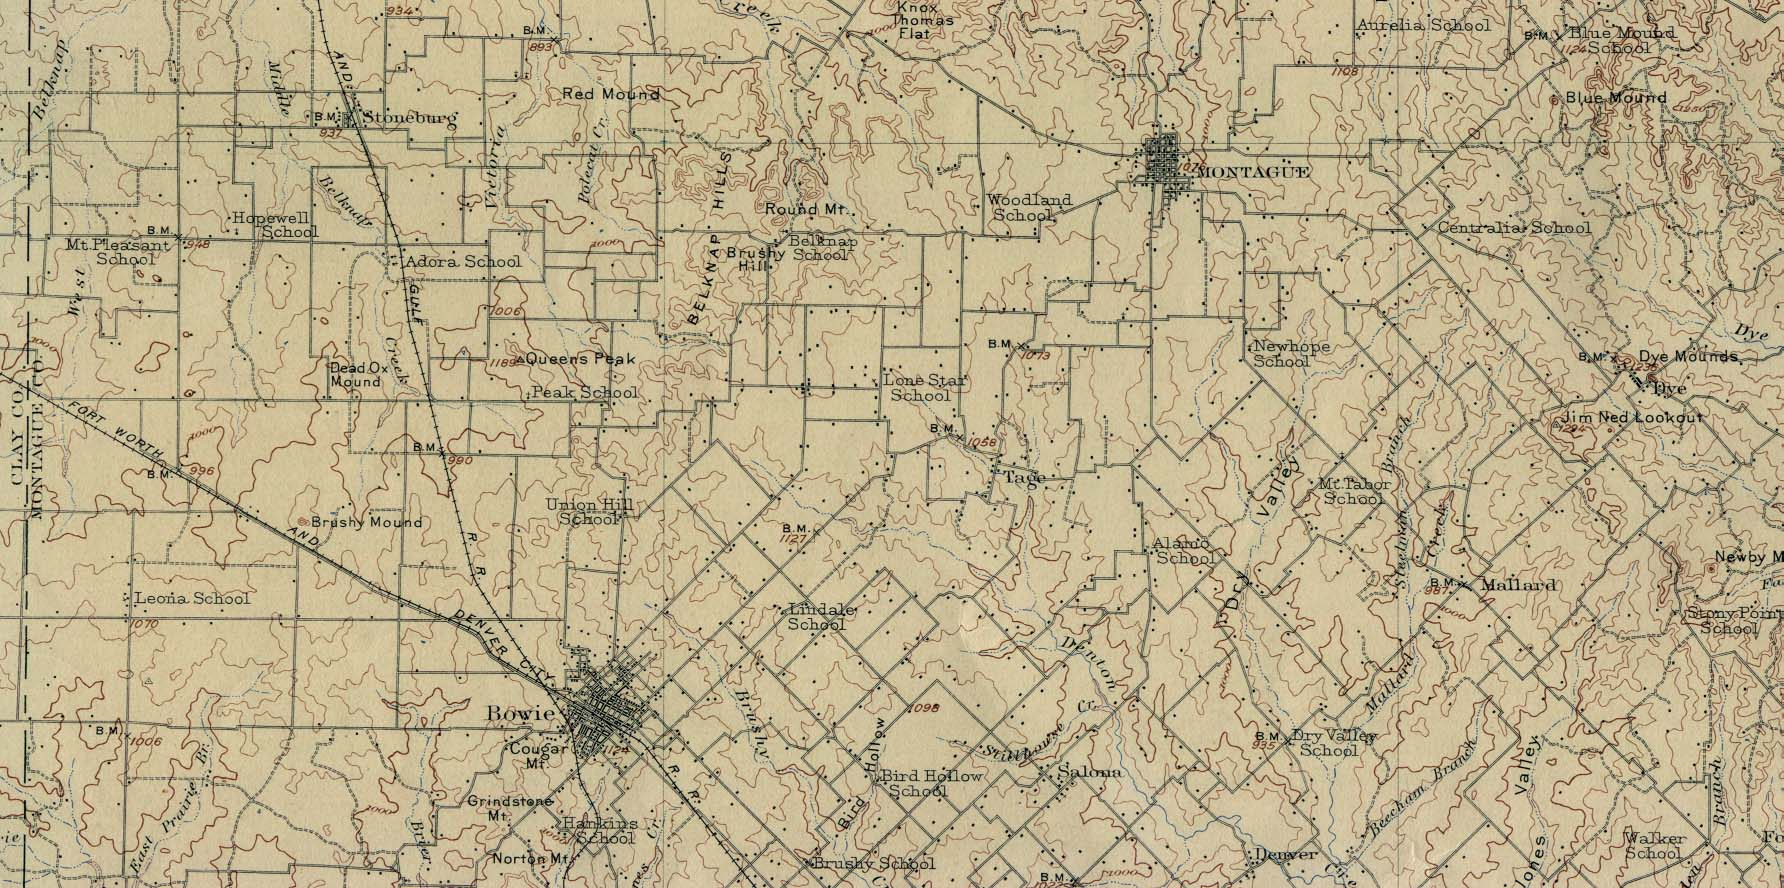 Historical Maps of U.S Cities. Montague, Texas 1905 Original Scale 1:125,000 U.S. Geological Survey 1905. (359K)